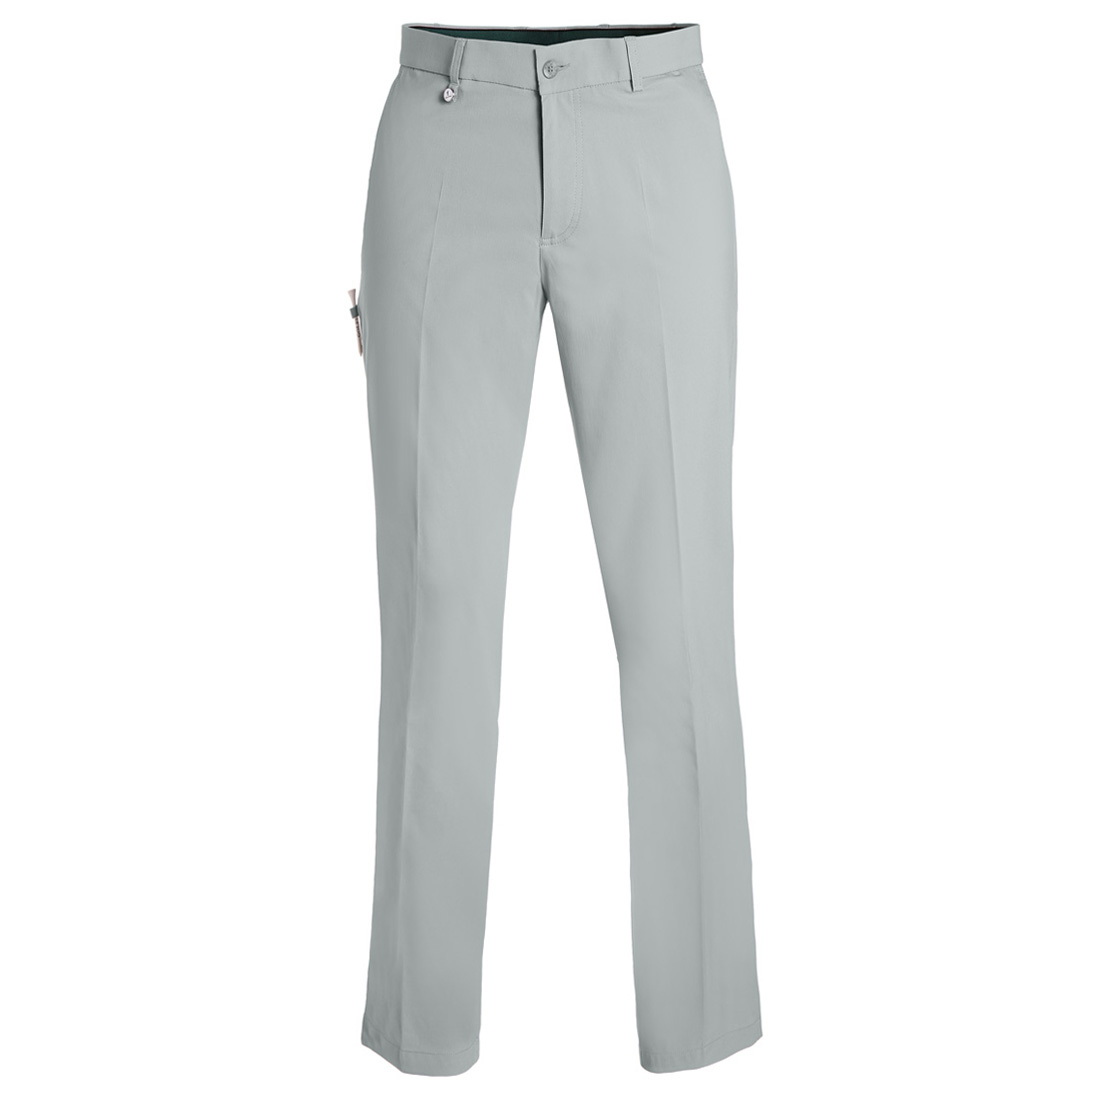 Men's pants made from stretch material with sun protection function